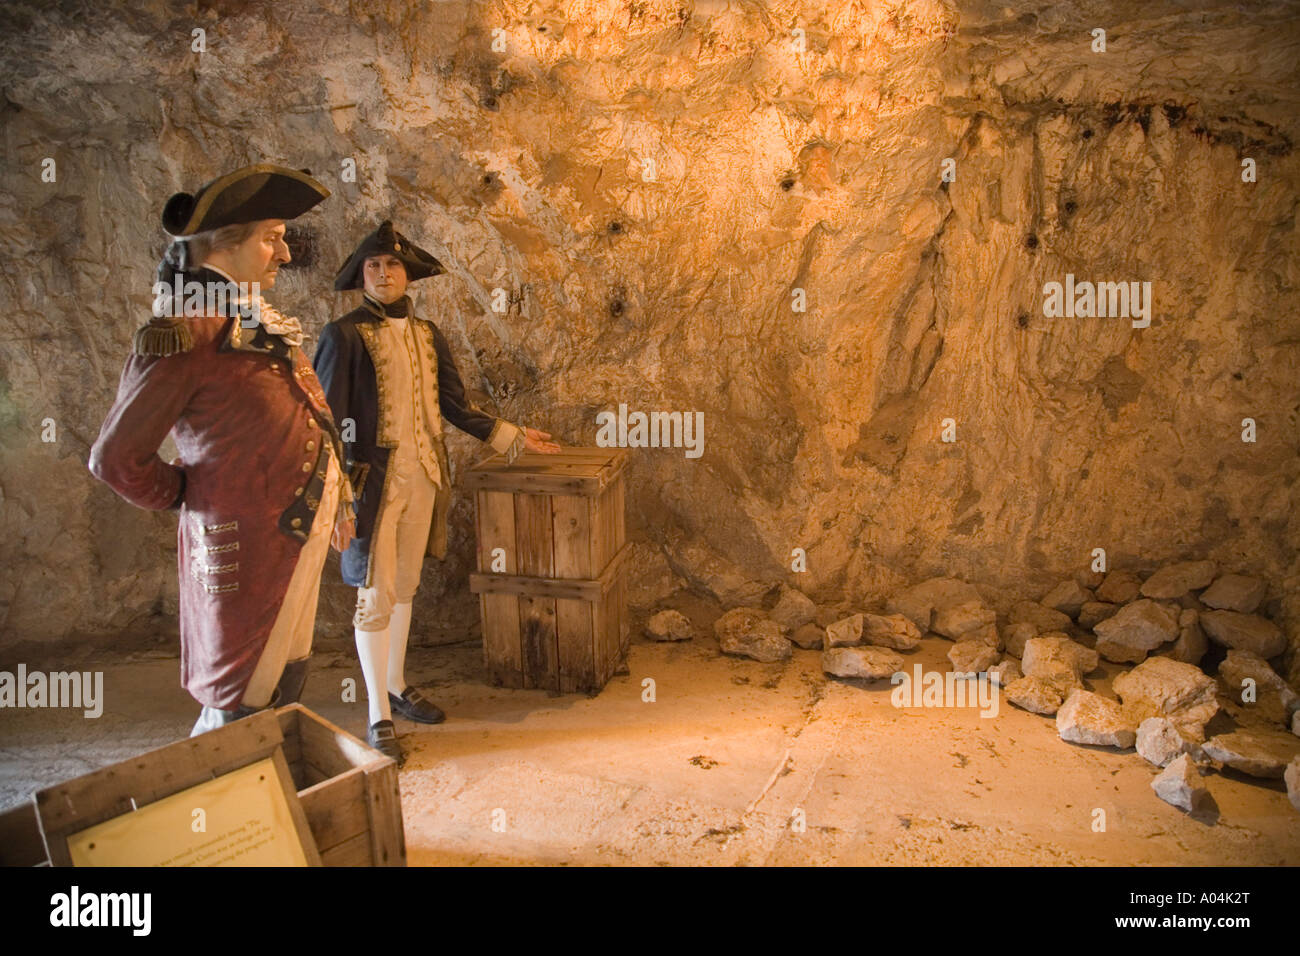 Gibraltar The Great Siege Tunnel Waxwork display of commanding officer General Eliot and Captain Curtis - Stock Image